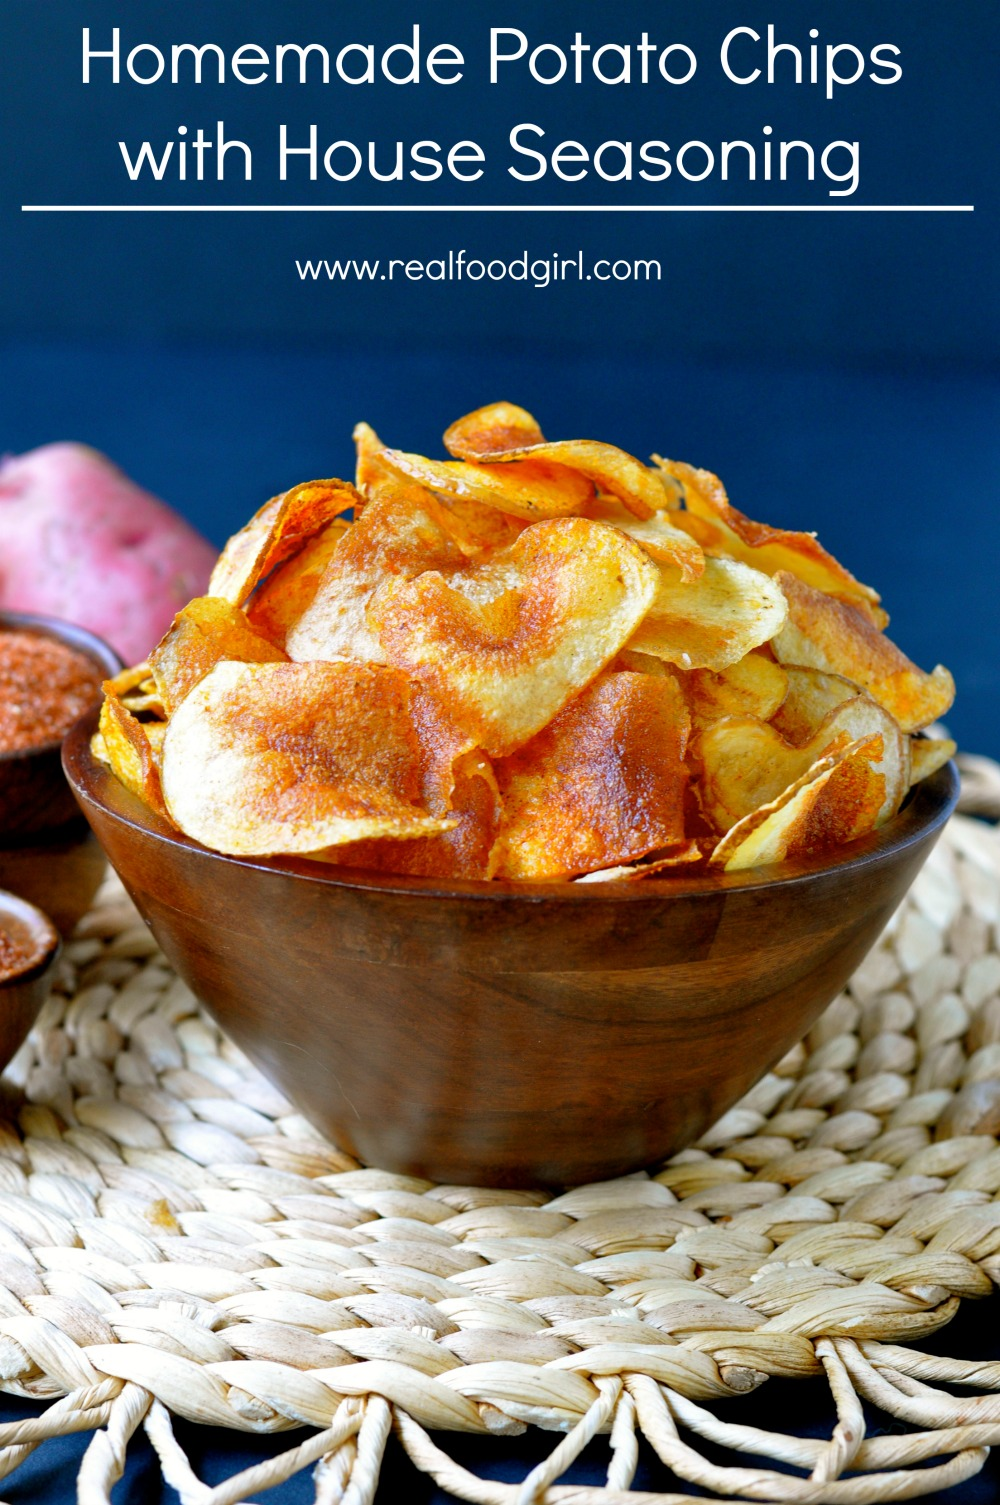 Homemade Potato Chips with House Seasoning| www.realfoodgirl.com